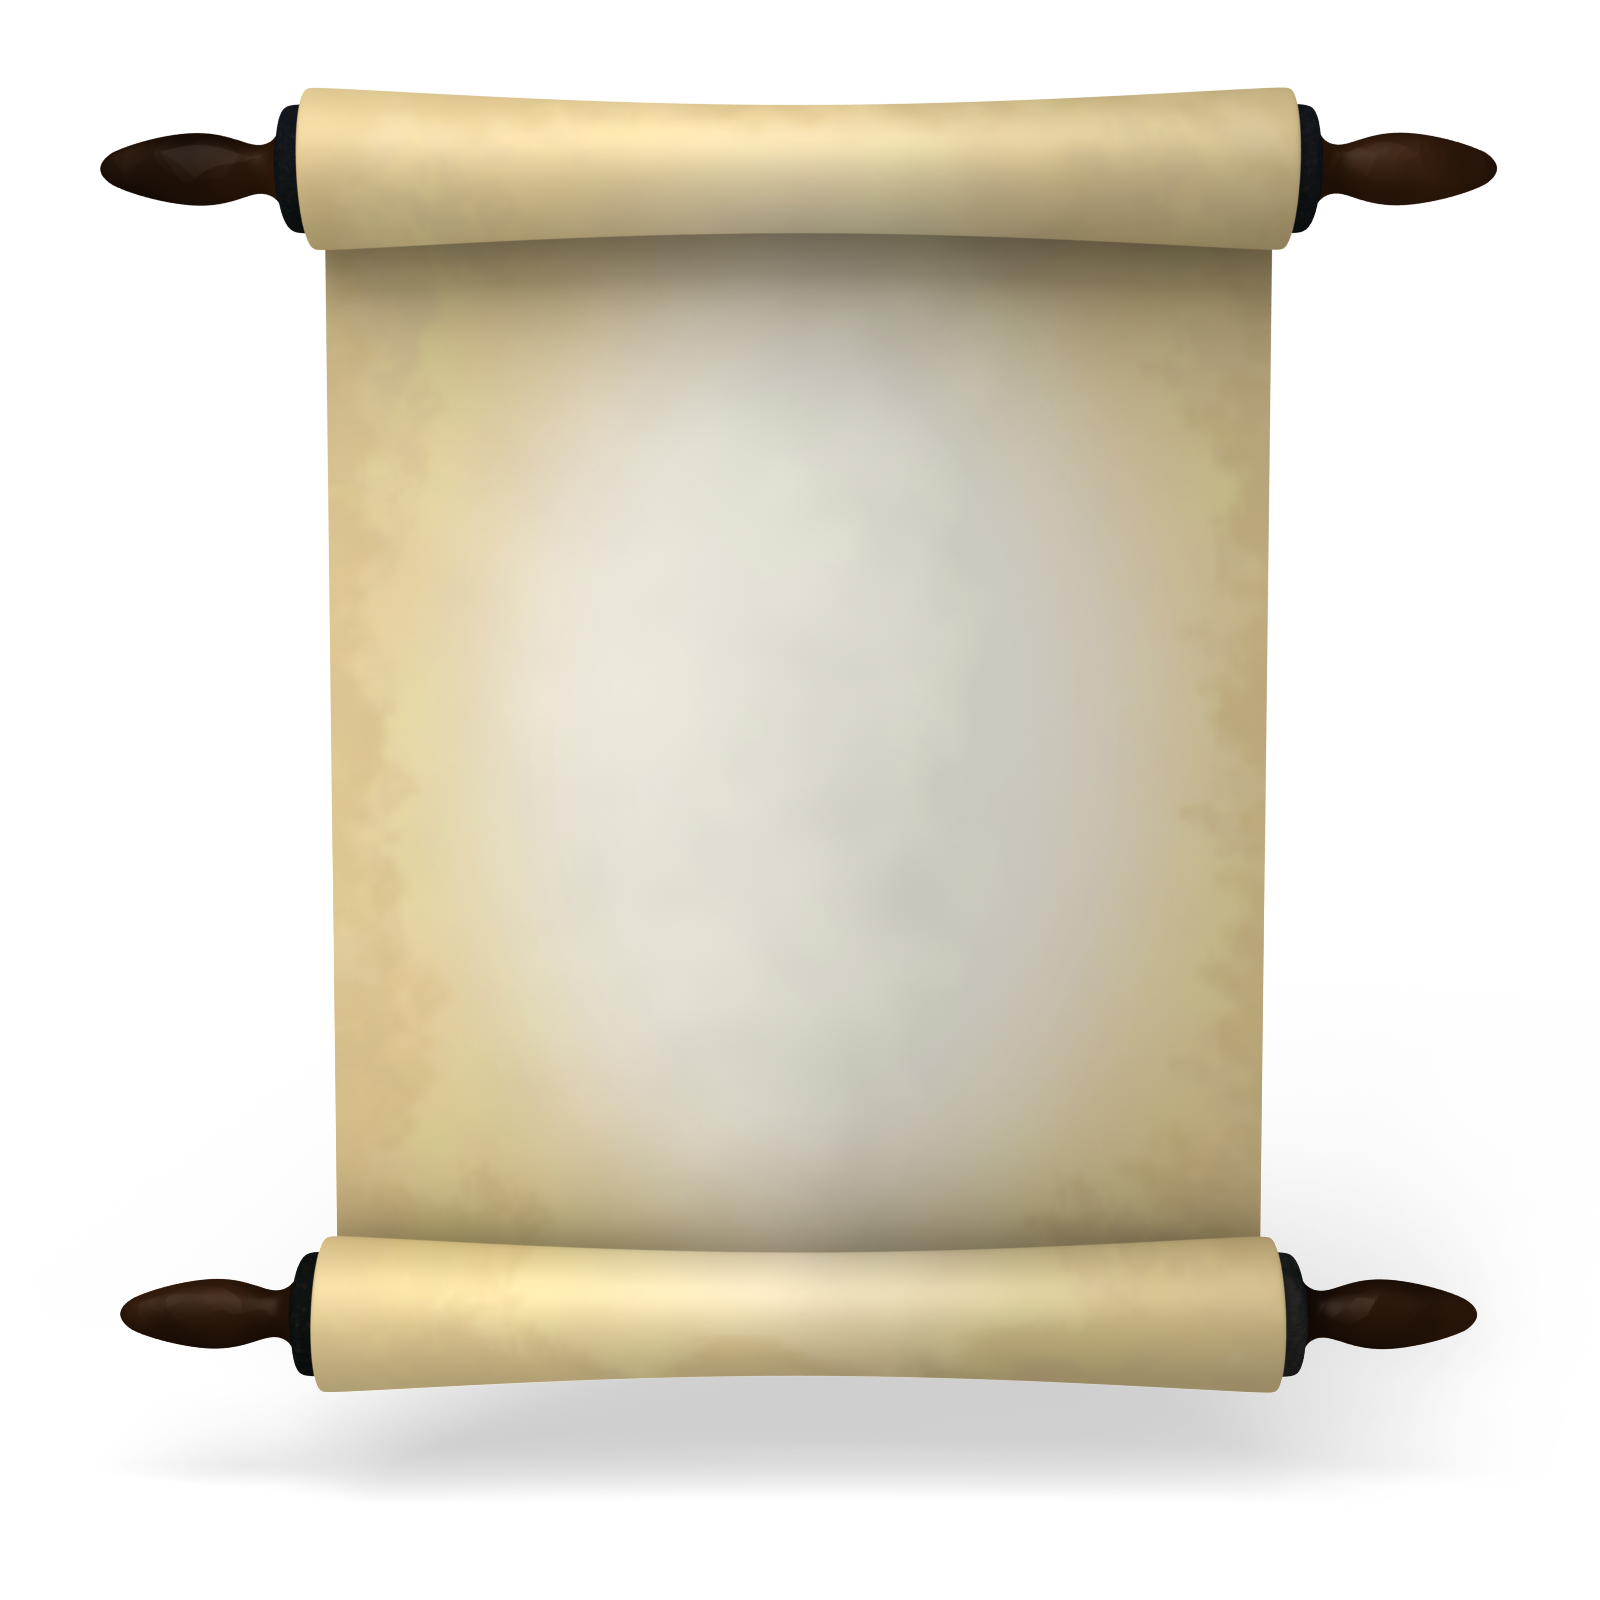 Blank scroll png. Ancient paper clipart best